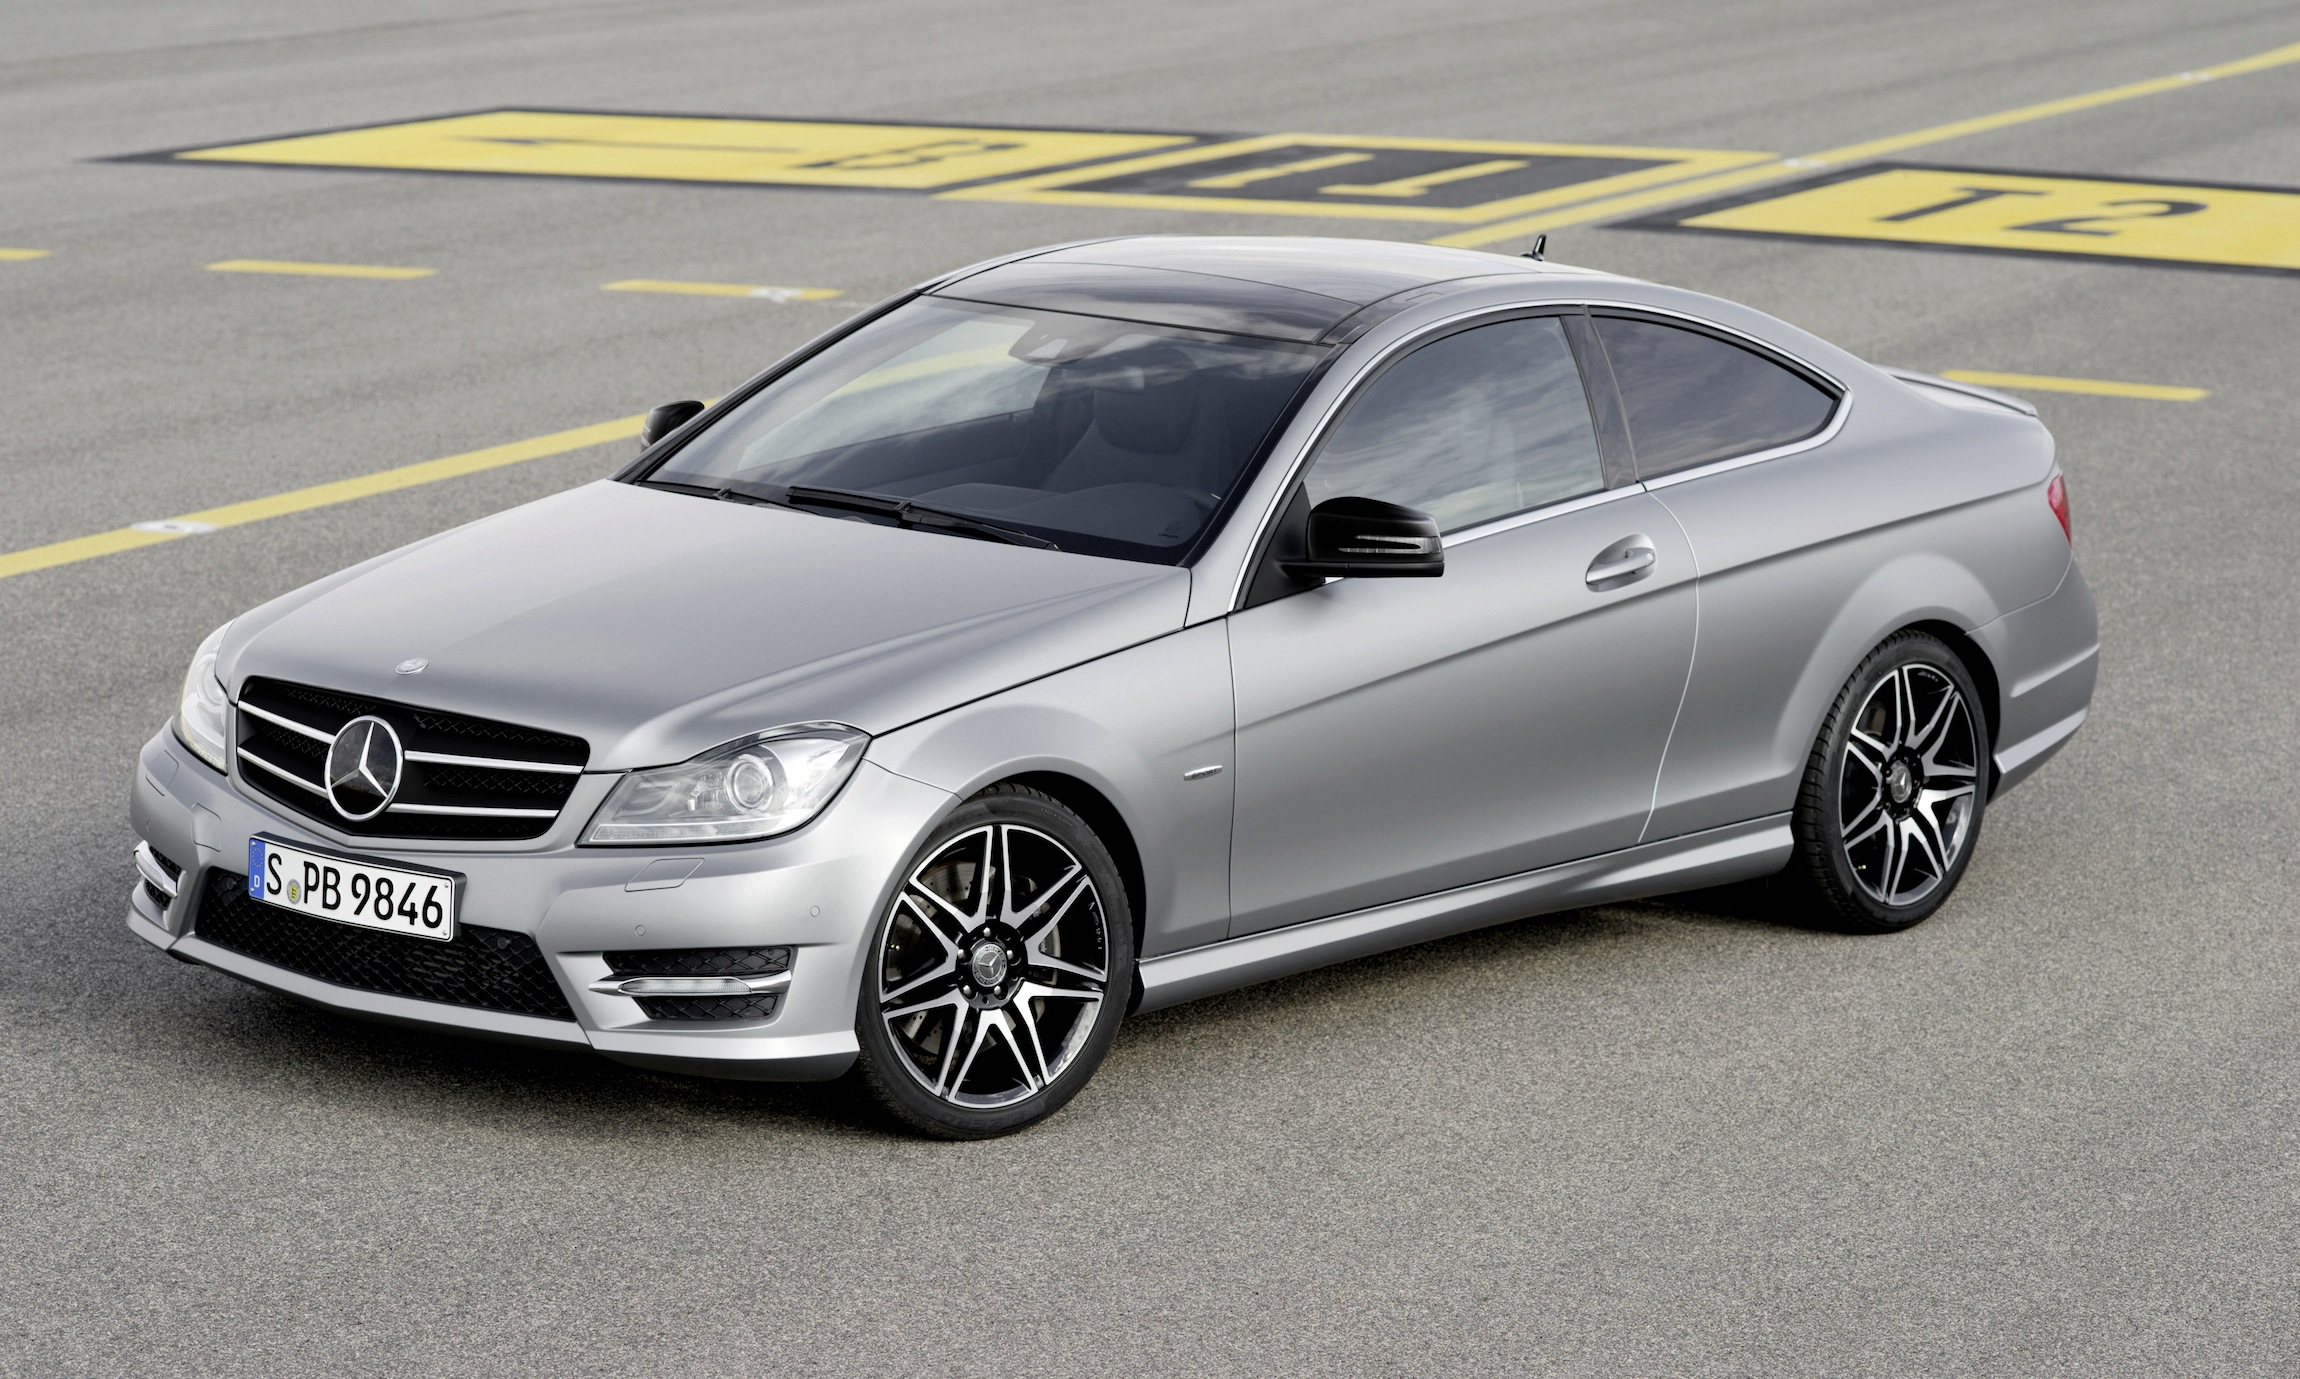 mercedes benz c250 coupe sport adds amg visuals and handling photos 1 of 3. Black Bedroom Furniture Sets. Home Design Ideas